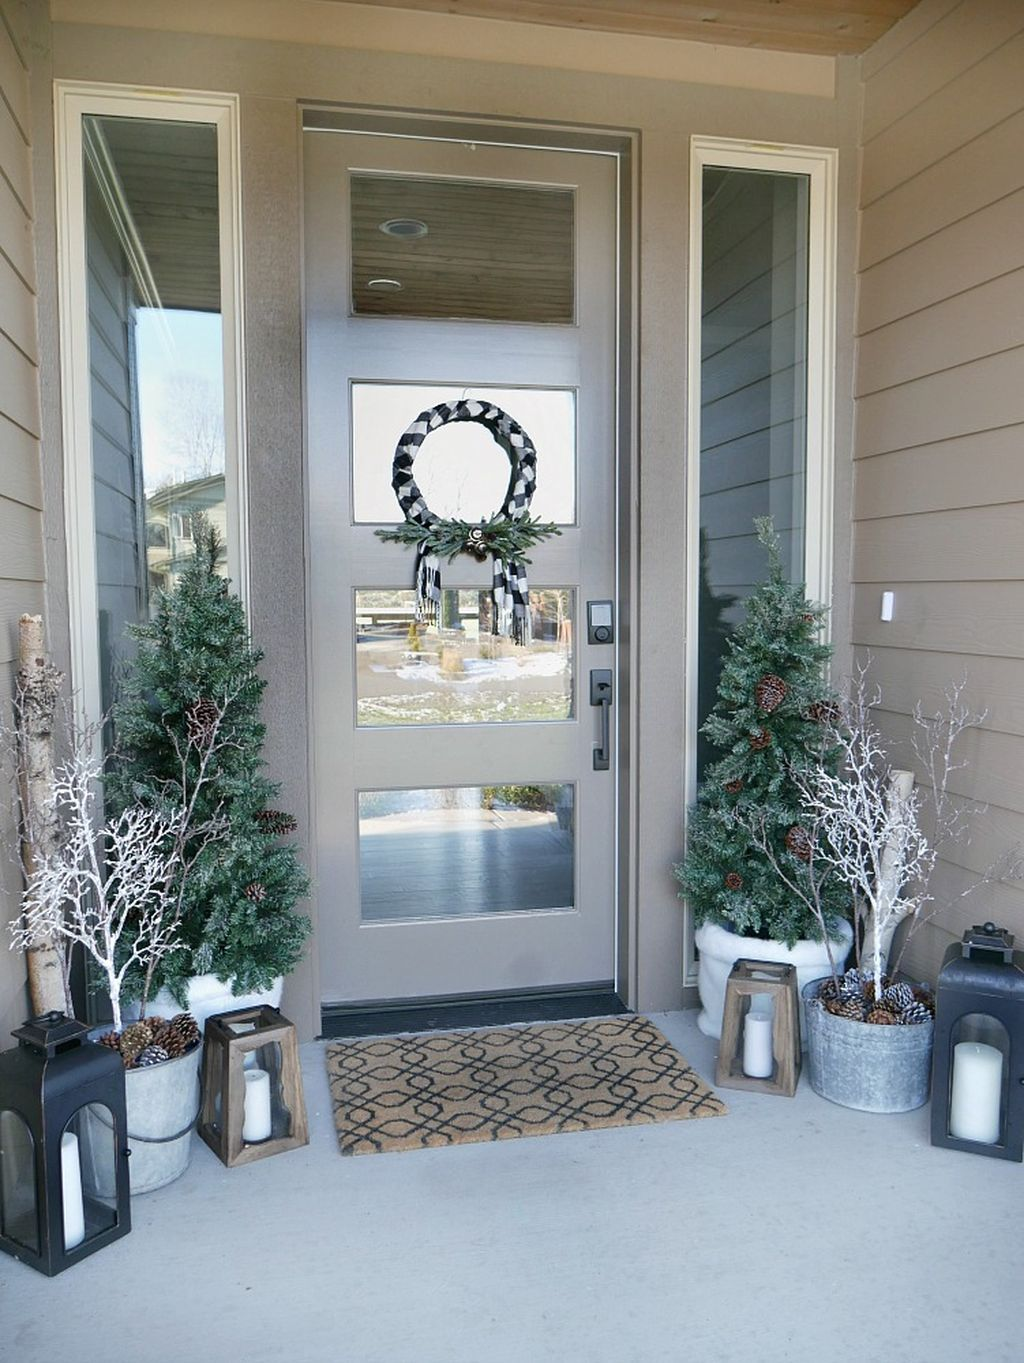 58 Stylish Winter Decoration Ideas for Your Front Door & 58 Stylish Winter Decoration Ideas for Your Front Door | Front doors ...